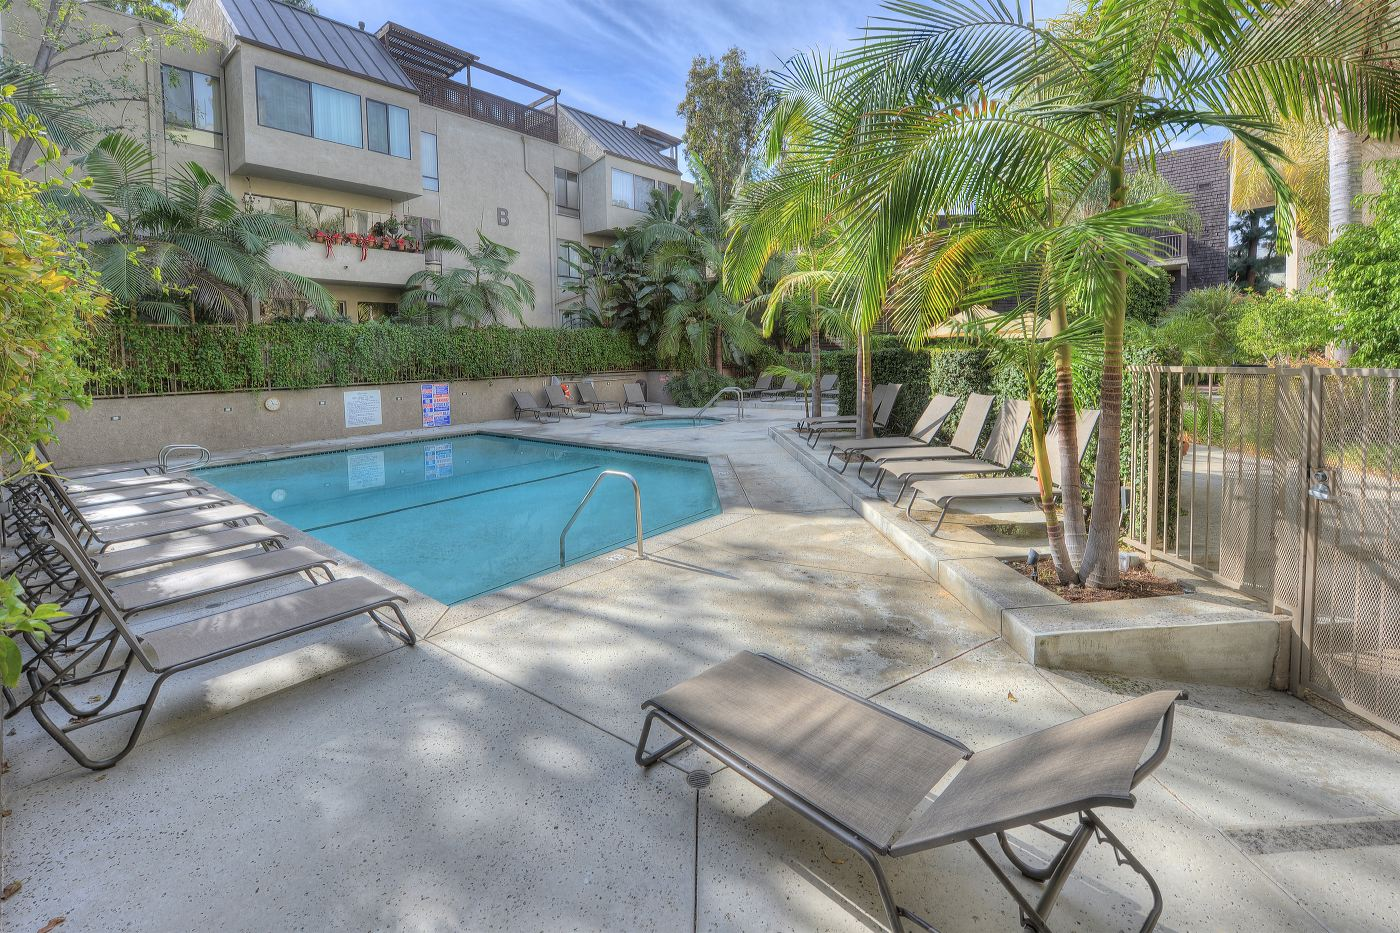 950 N. Kings Rd. #358  $322,500 | SOLD